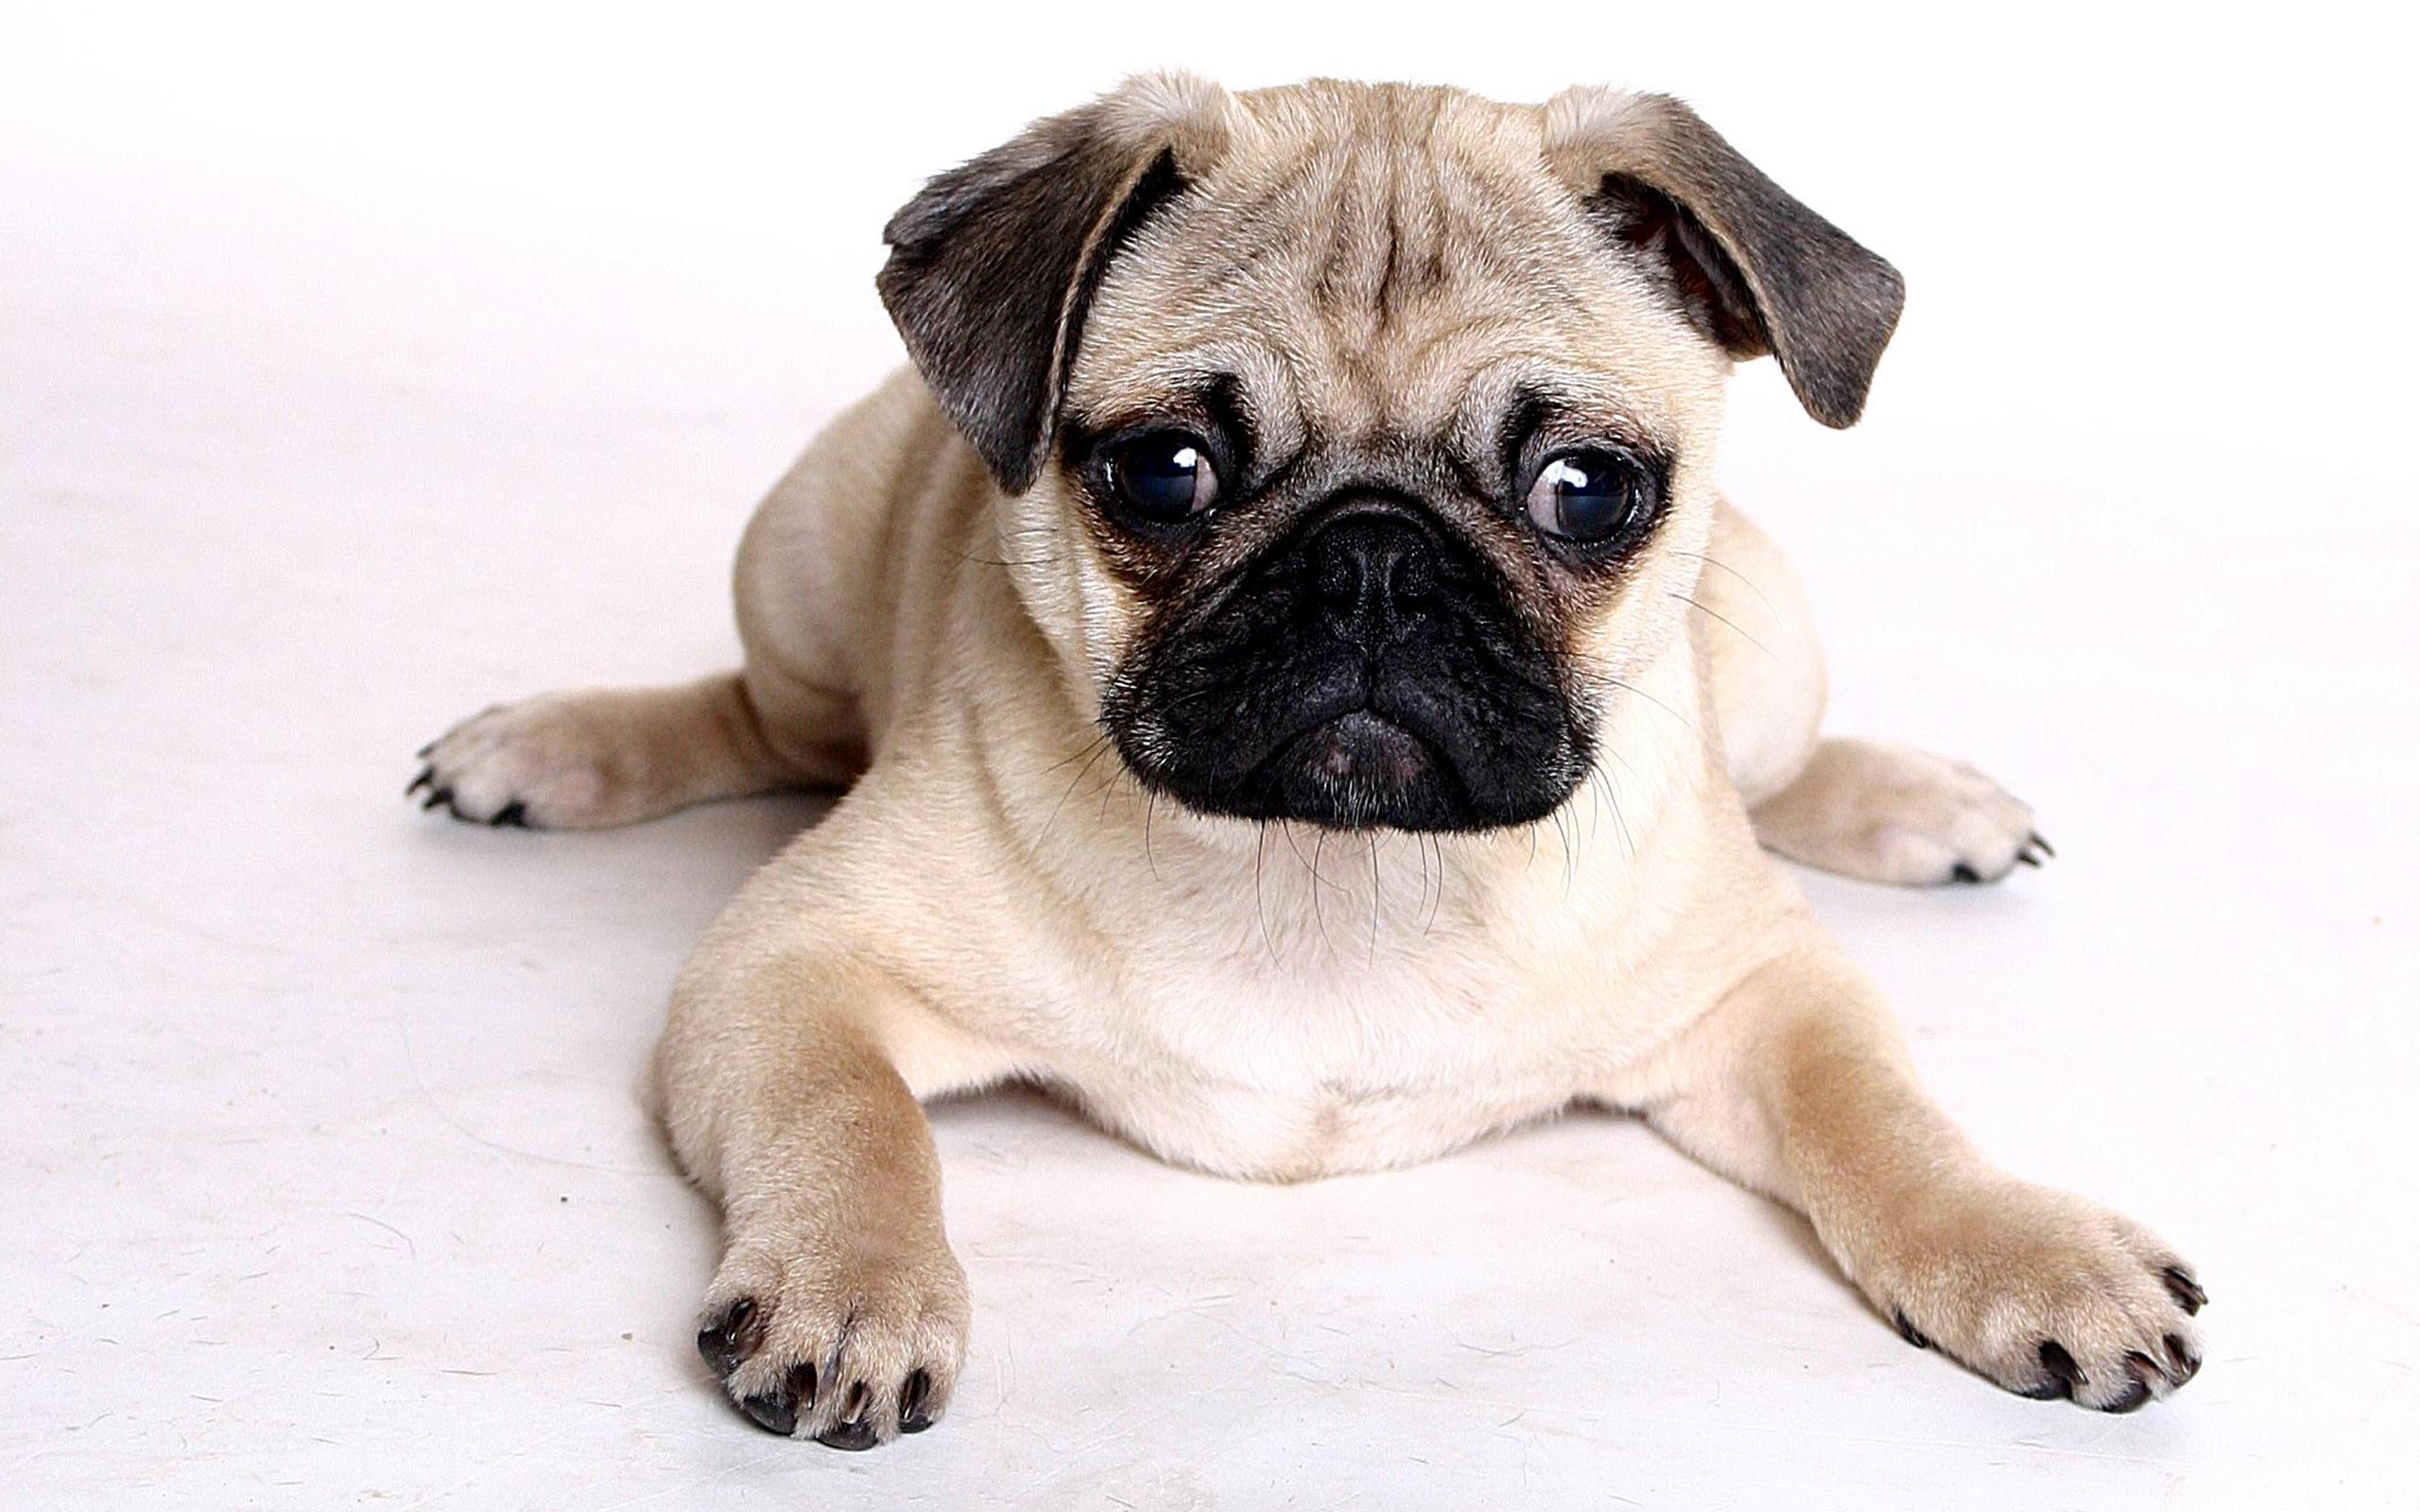 Pugs Wallpapers - Top Free Pugs Backgrounds - WallpaperAccess